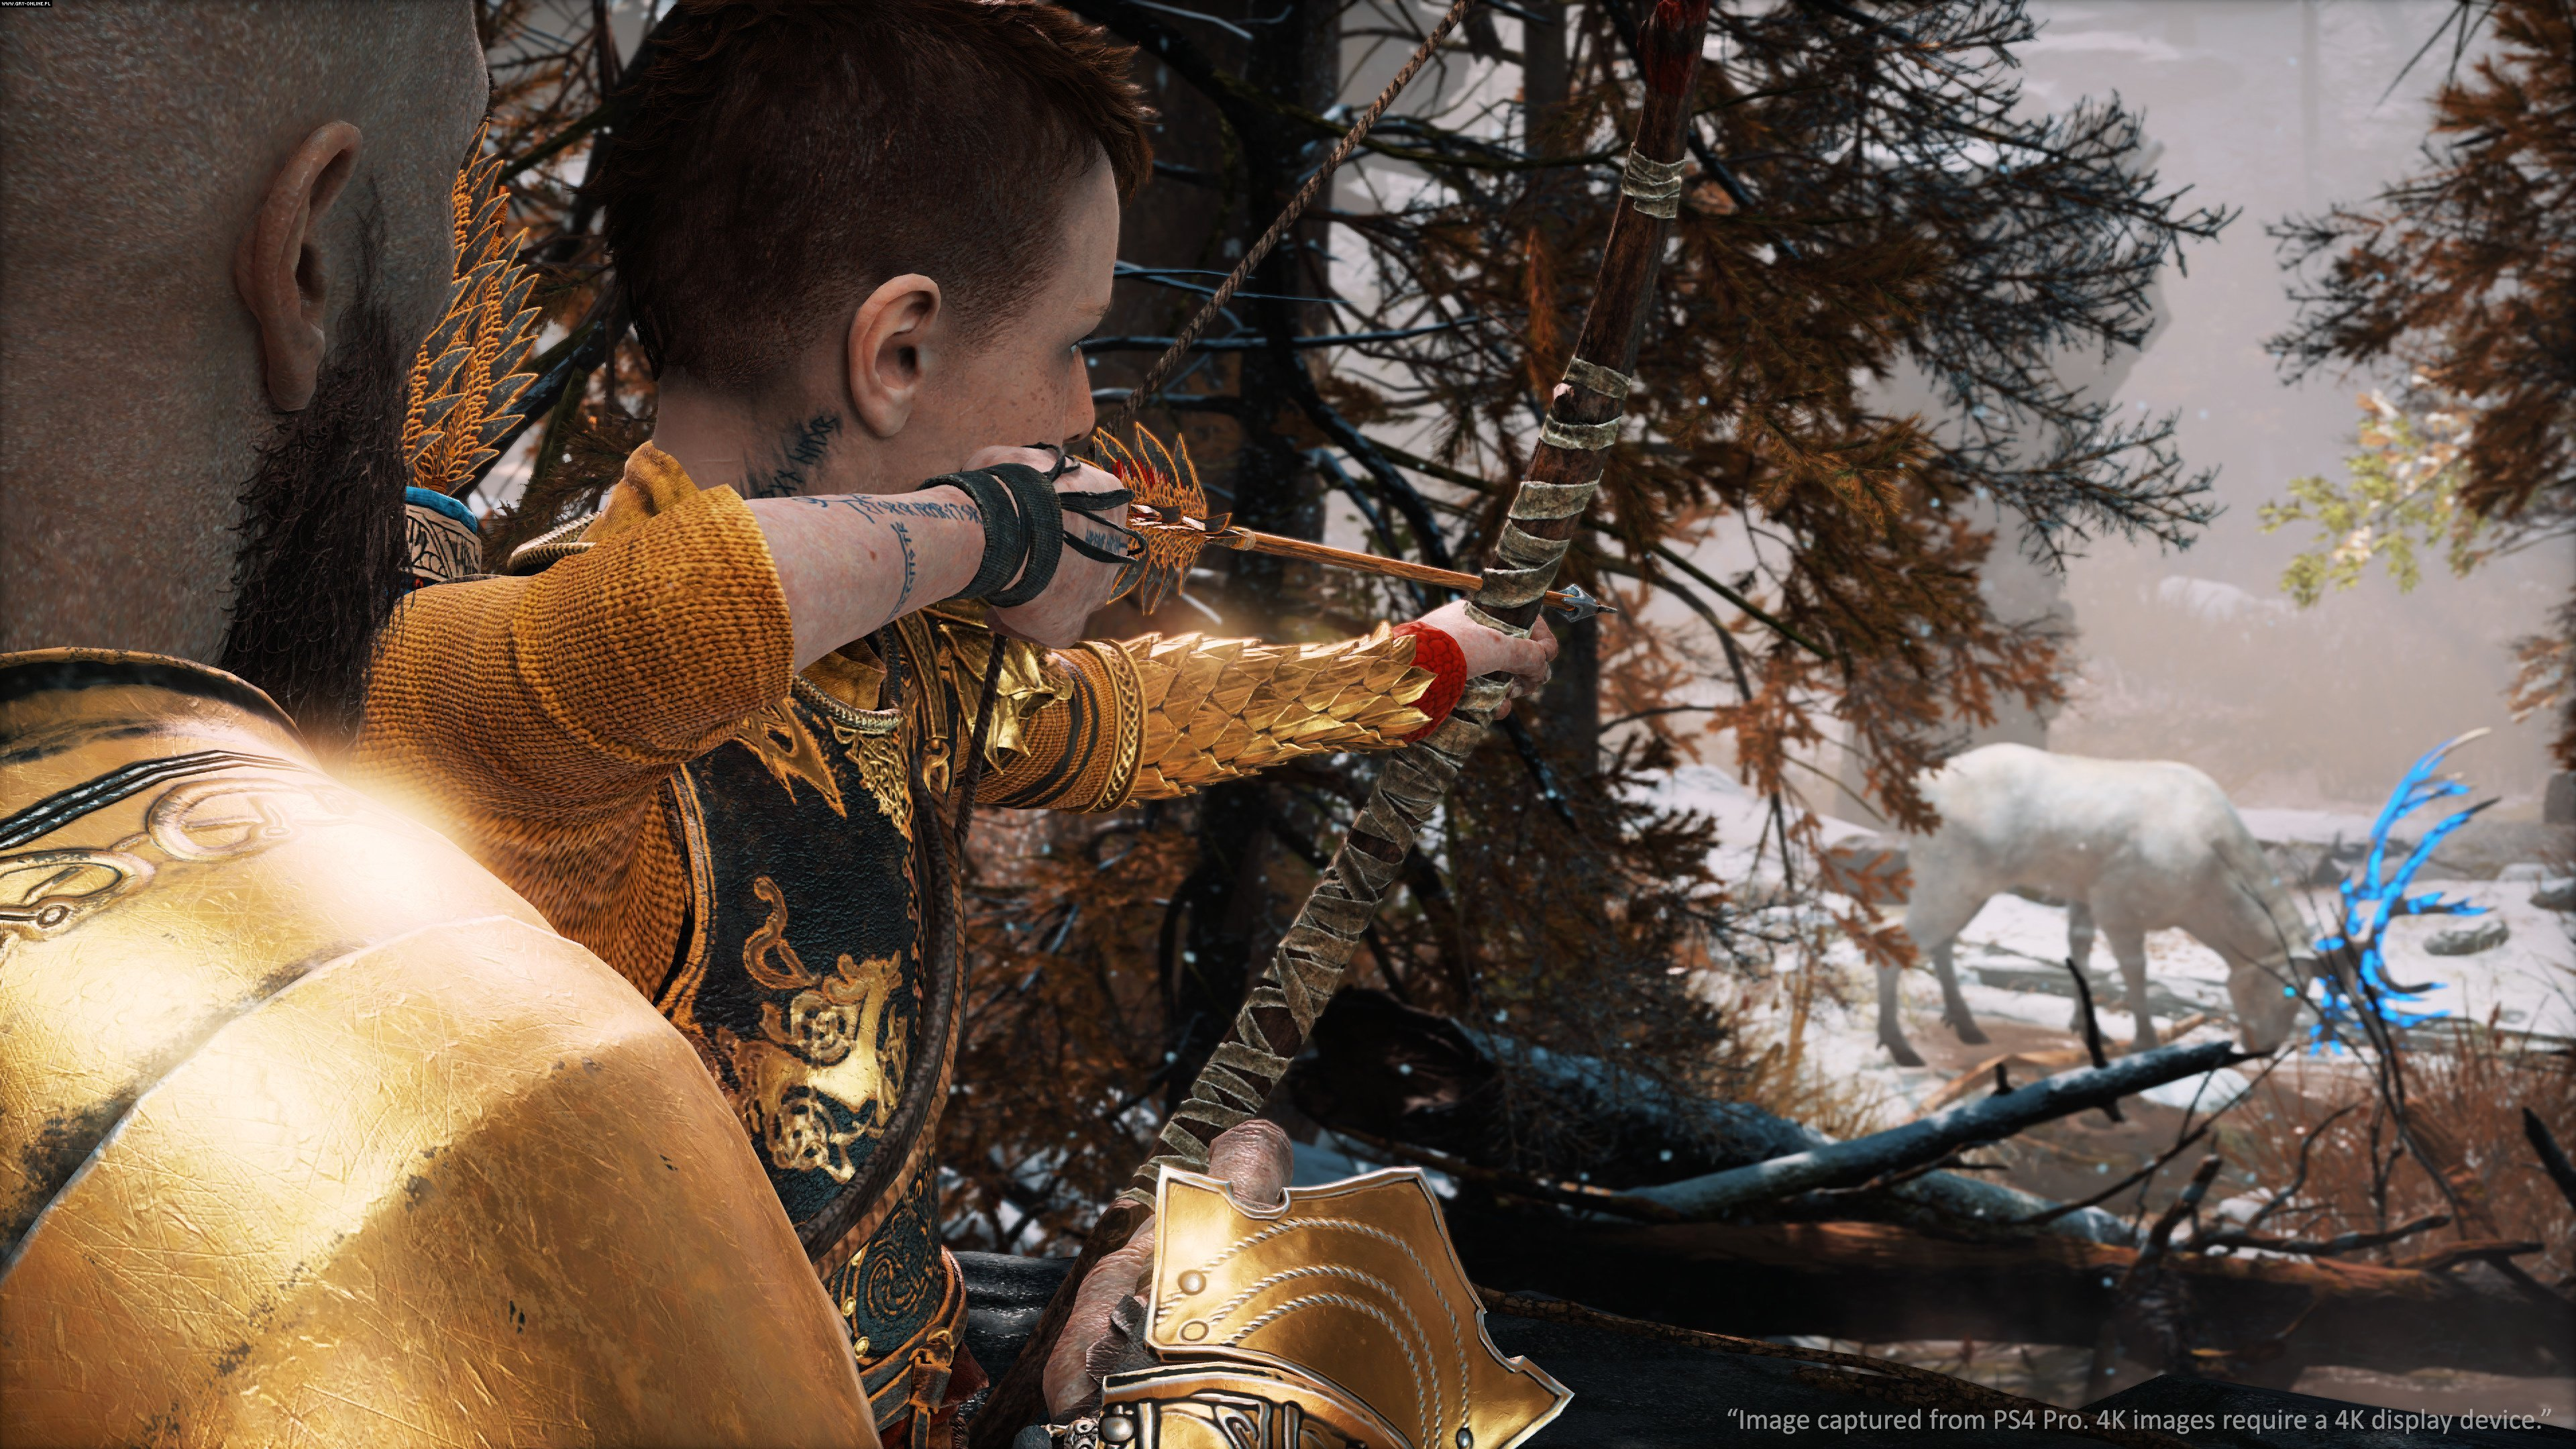 God of War PS4 Gry Screen 2/105, Sony Interactive Entertainment